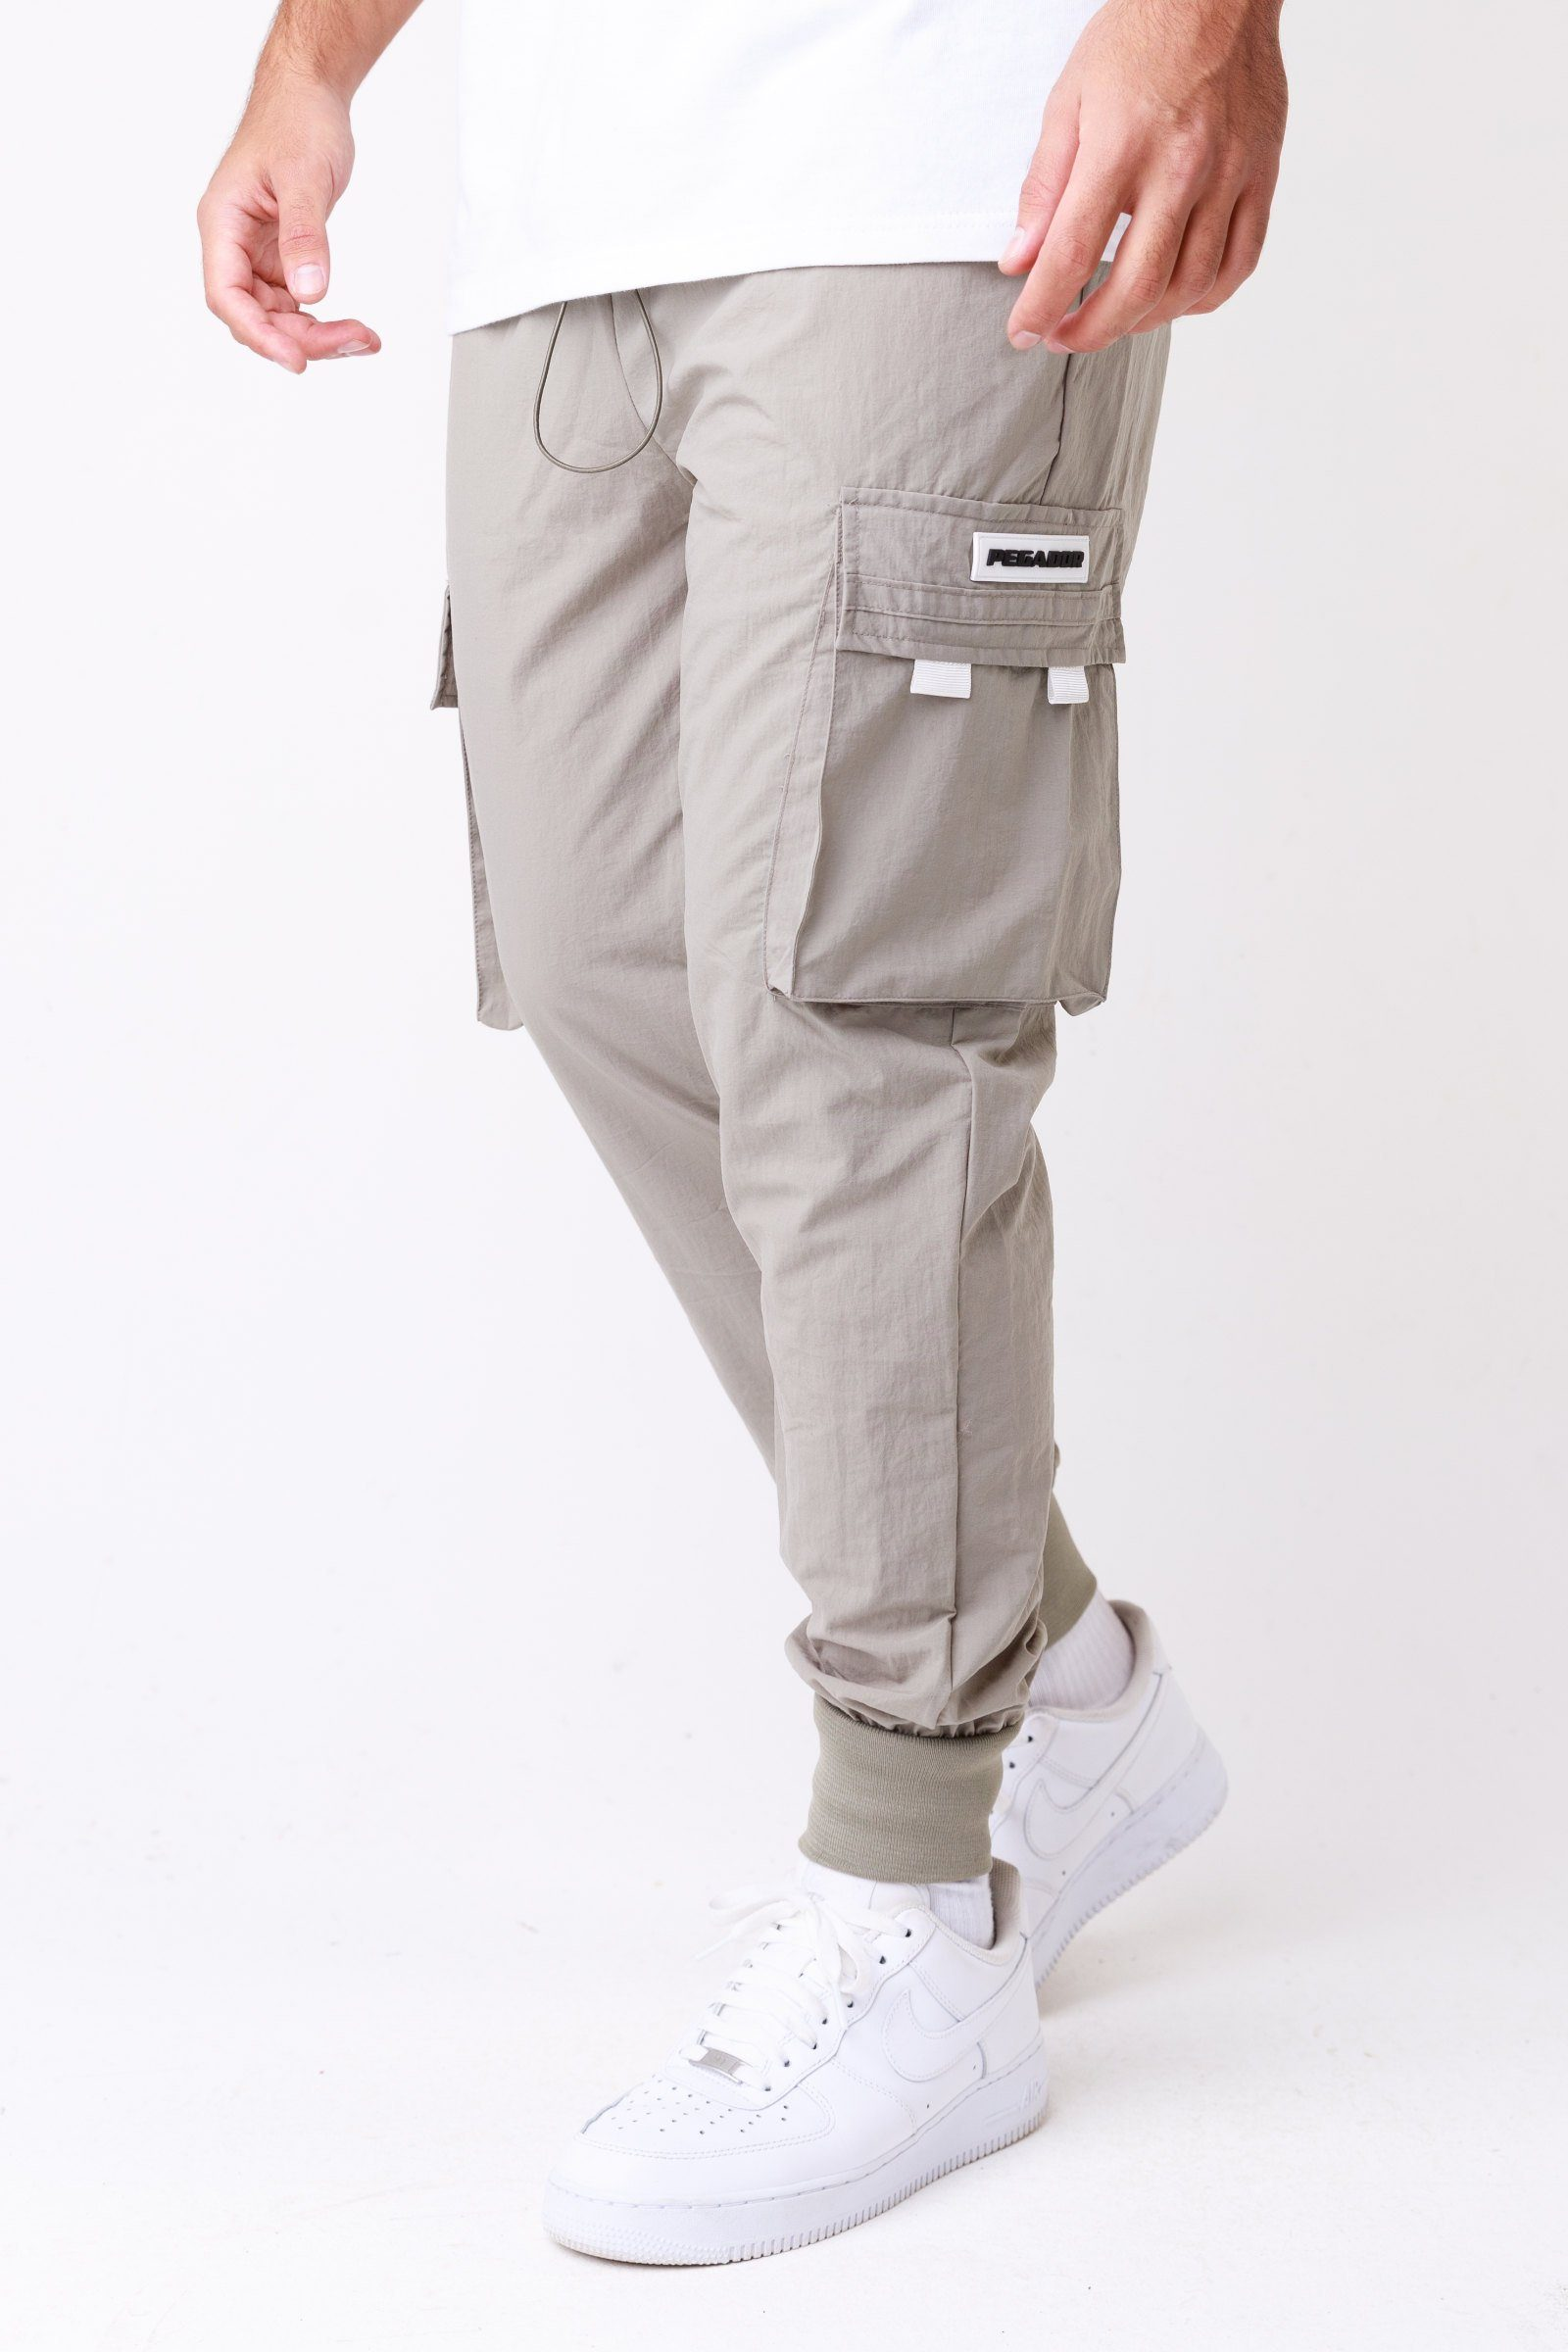 Reno Woven Cargo Pants Khaki BOTTOMS One blood